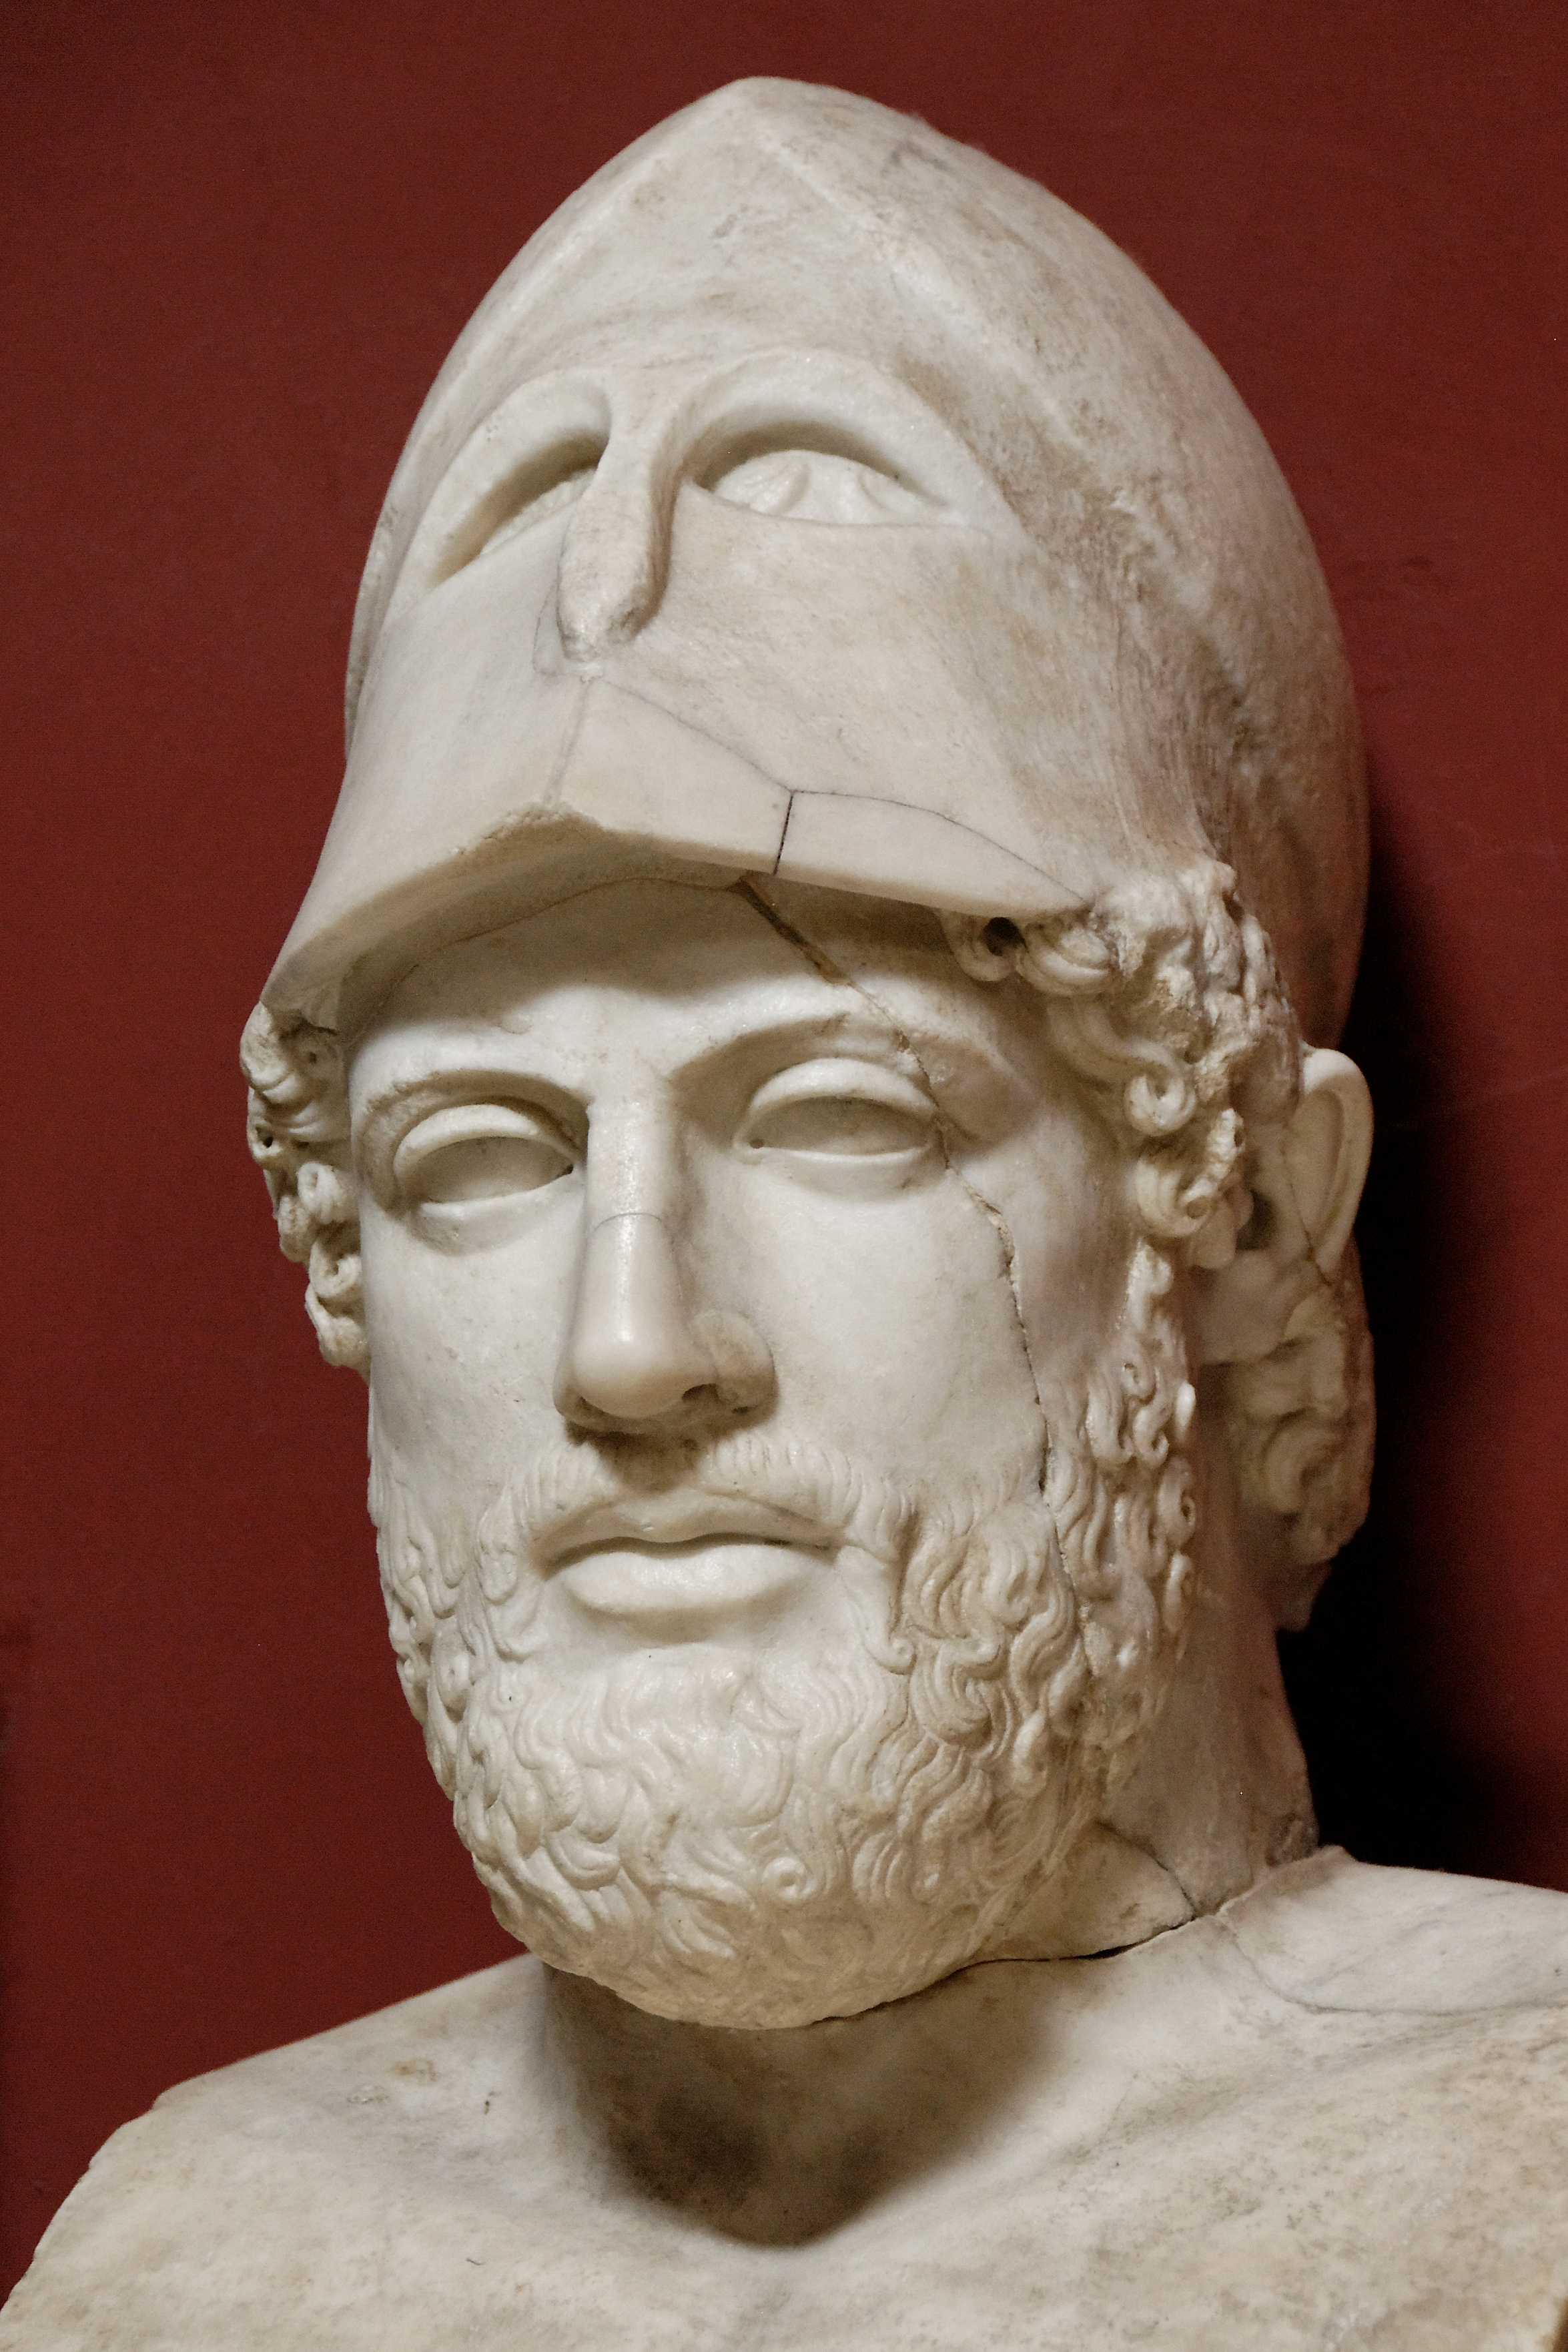 Pericles_Pio-Clementino_Inv269_n5